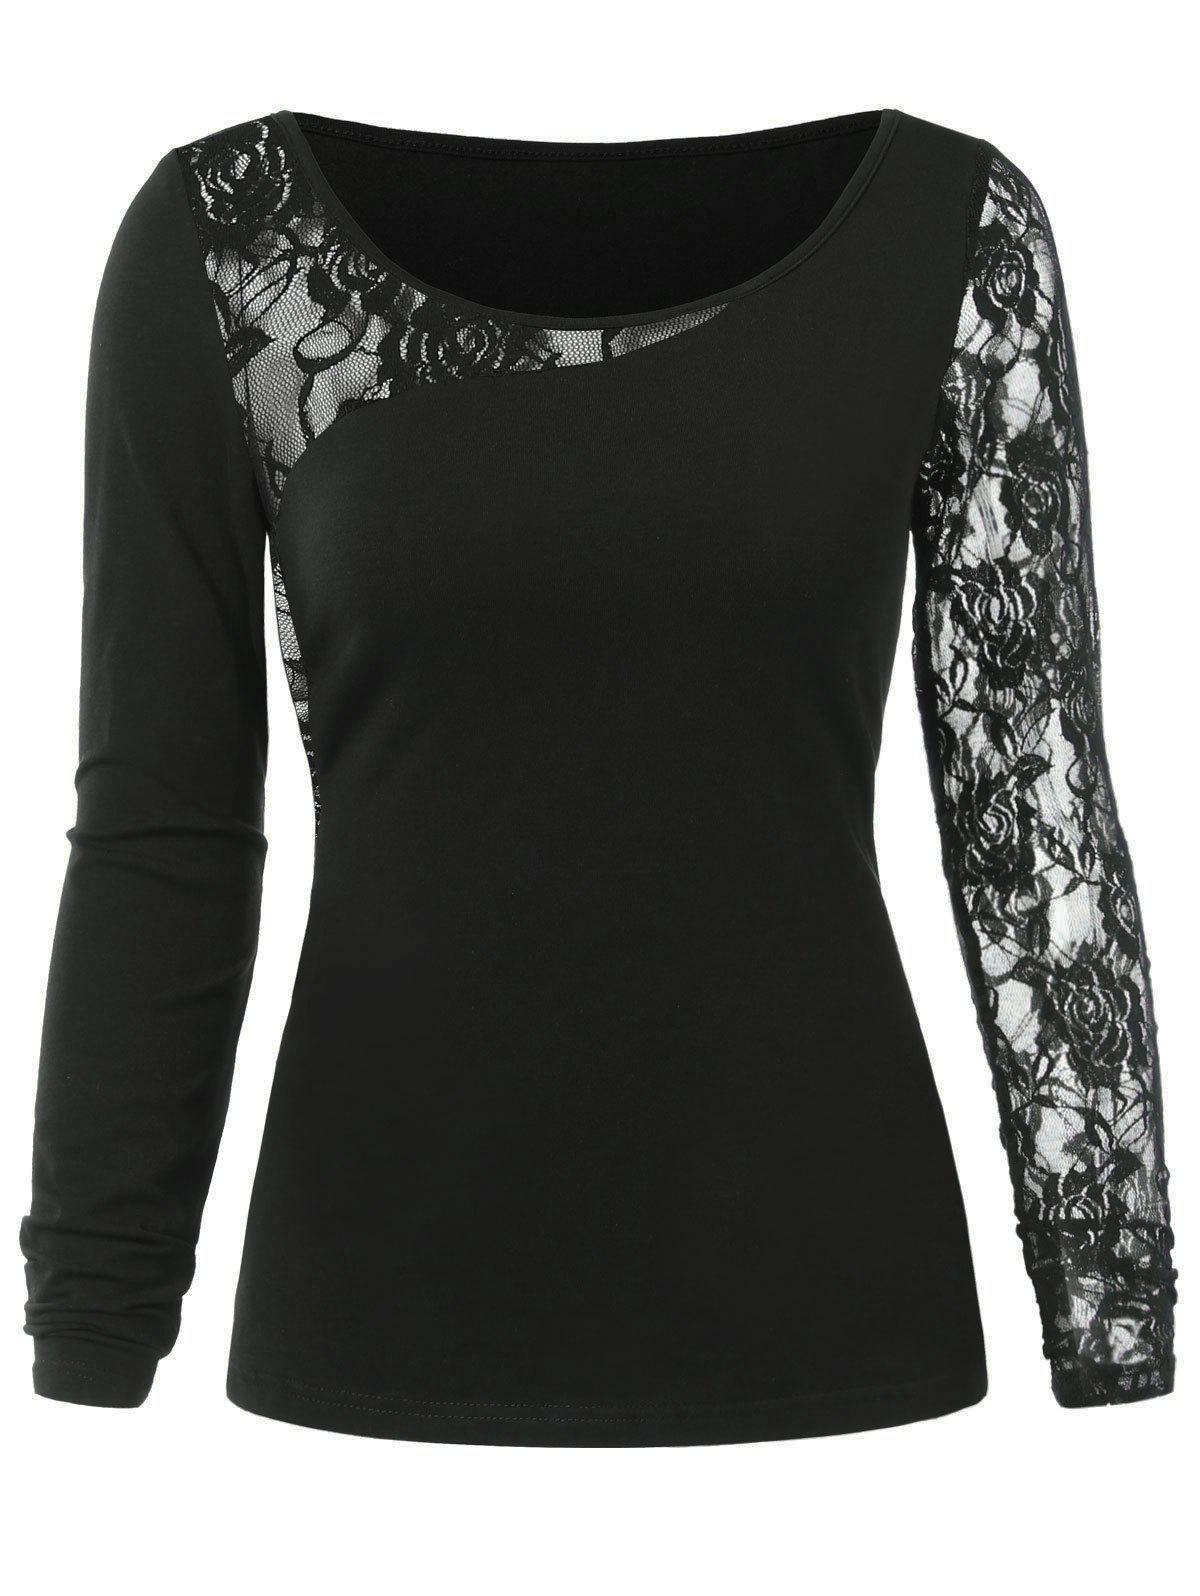 Lace Insert T-shirt - BLACK XL